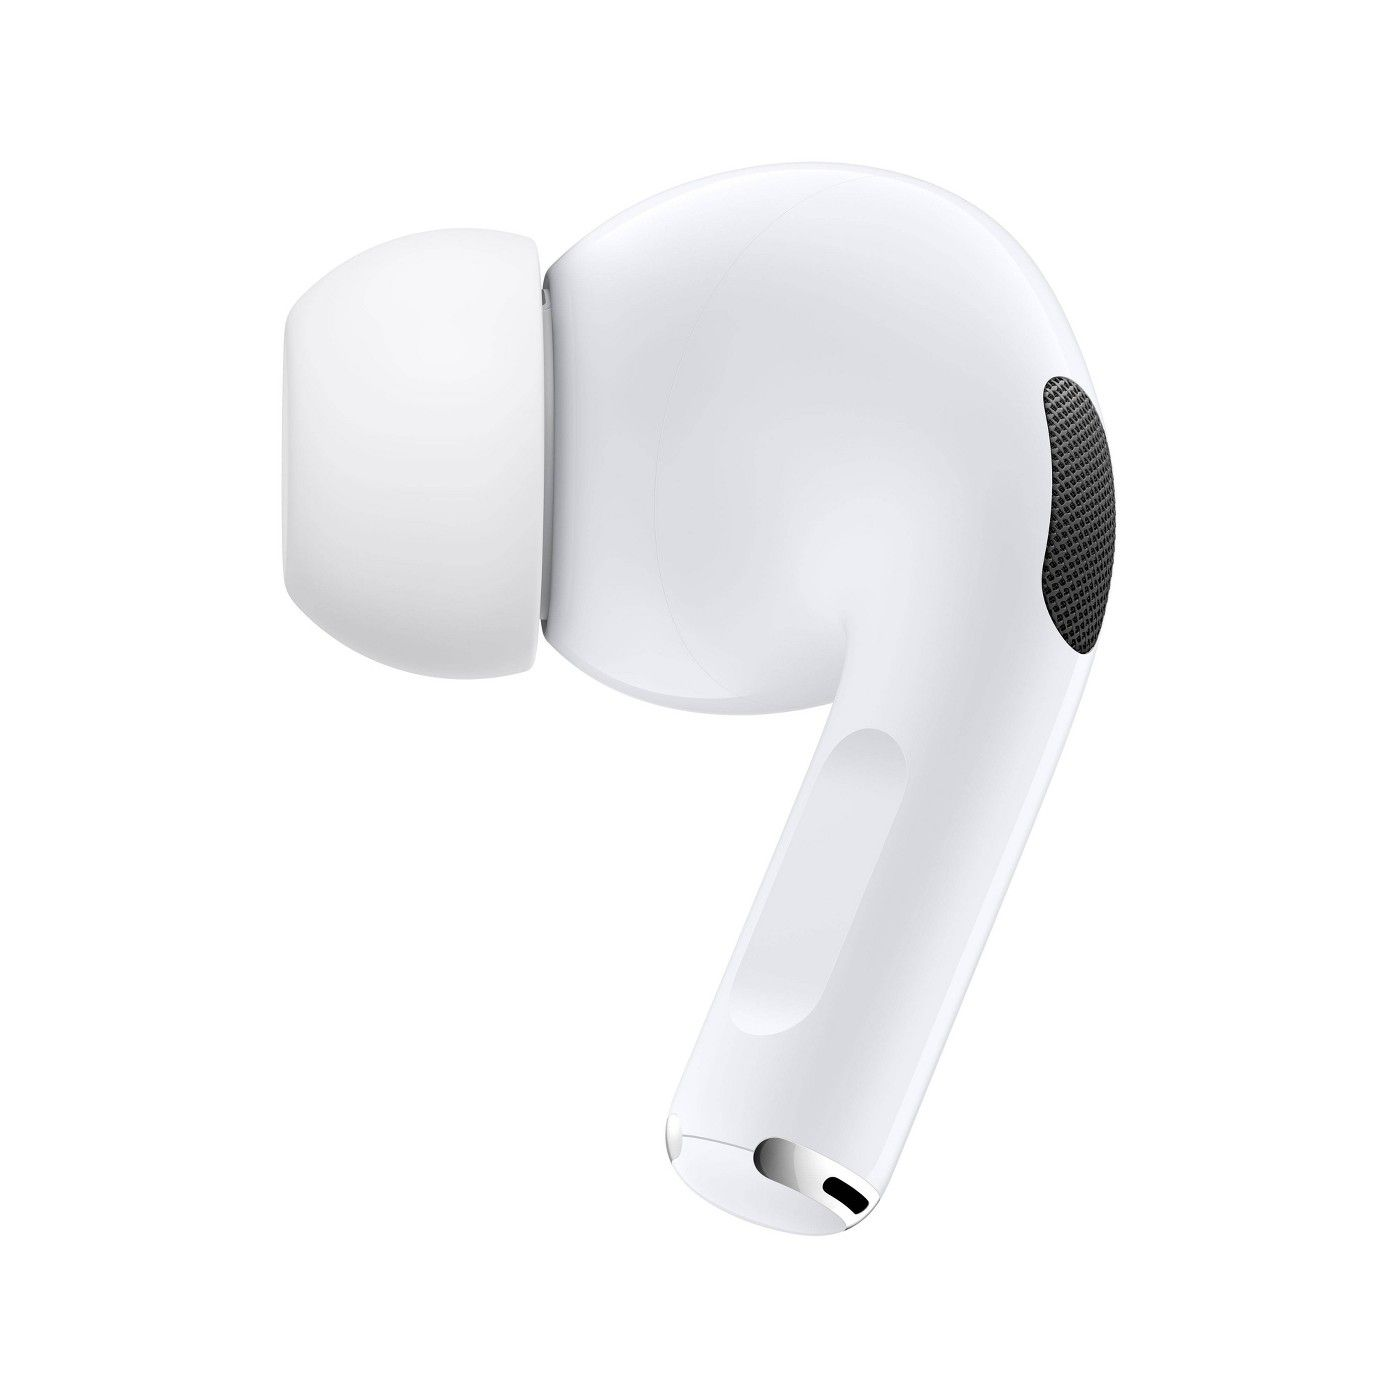 Apple Airpods Pro In 2021 Noise Cancelling Airpods Pro Wireless Earbuds